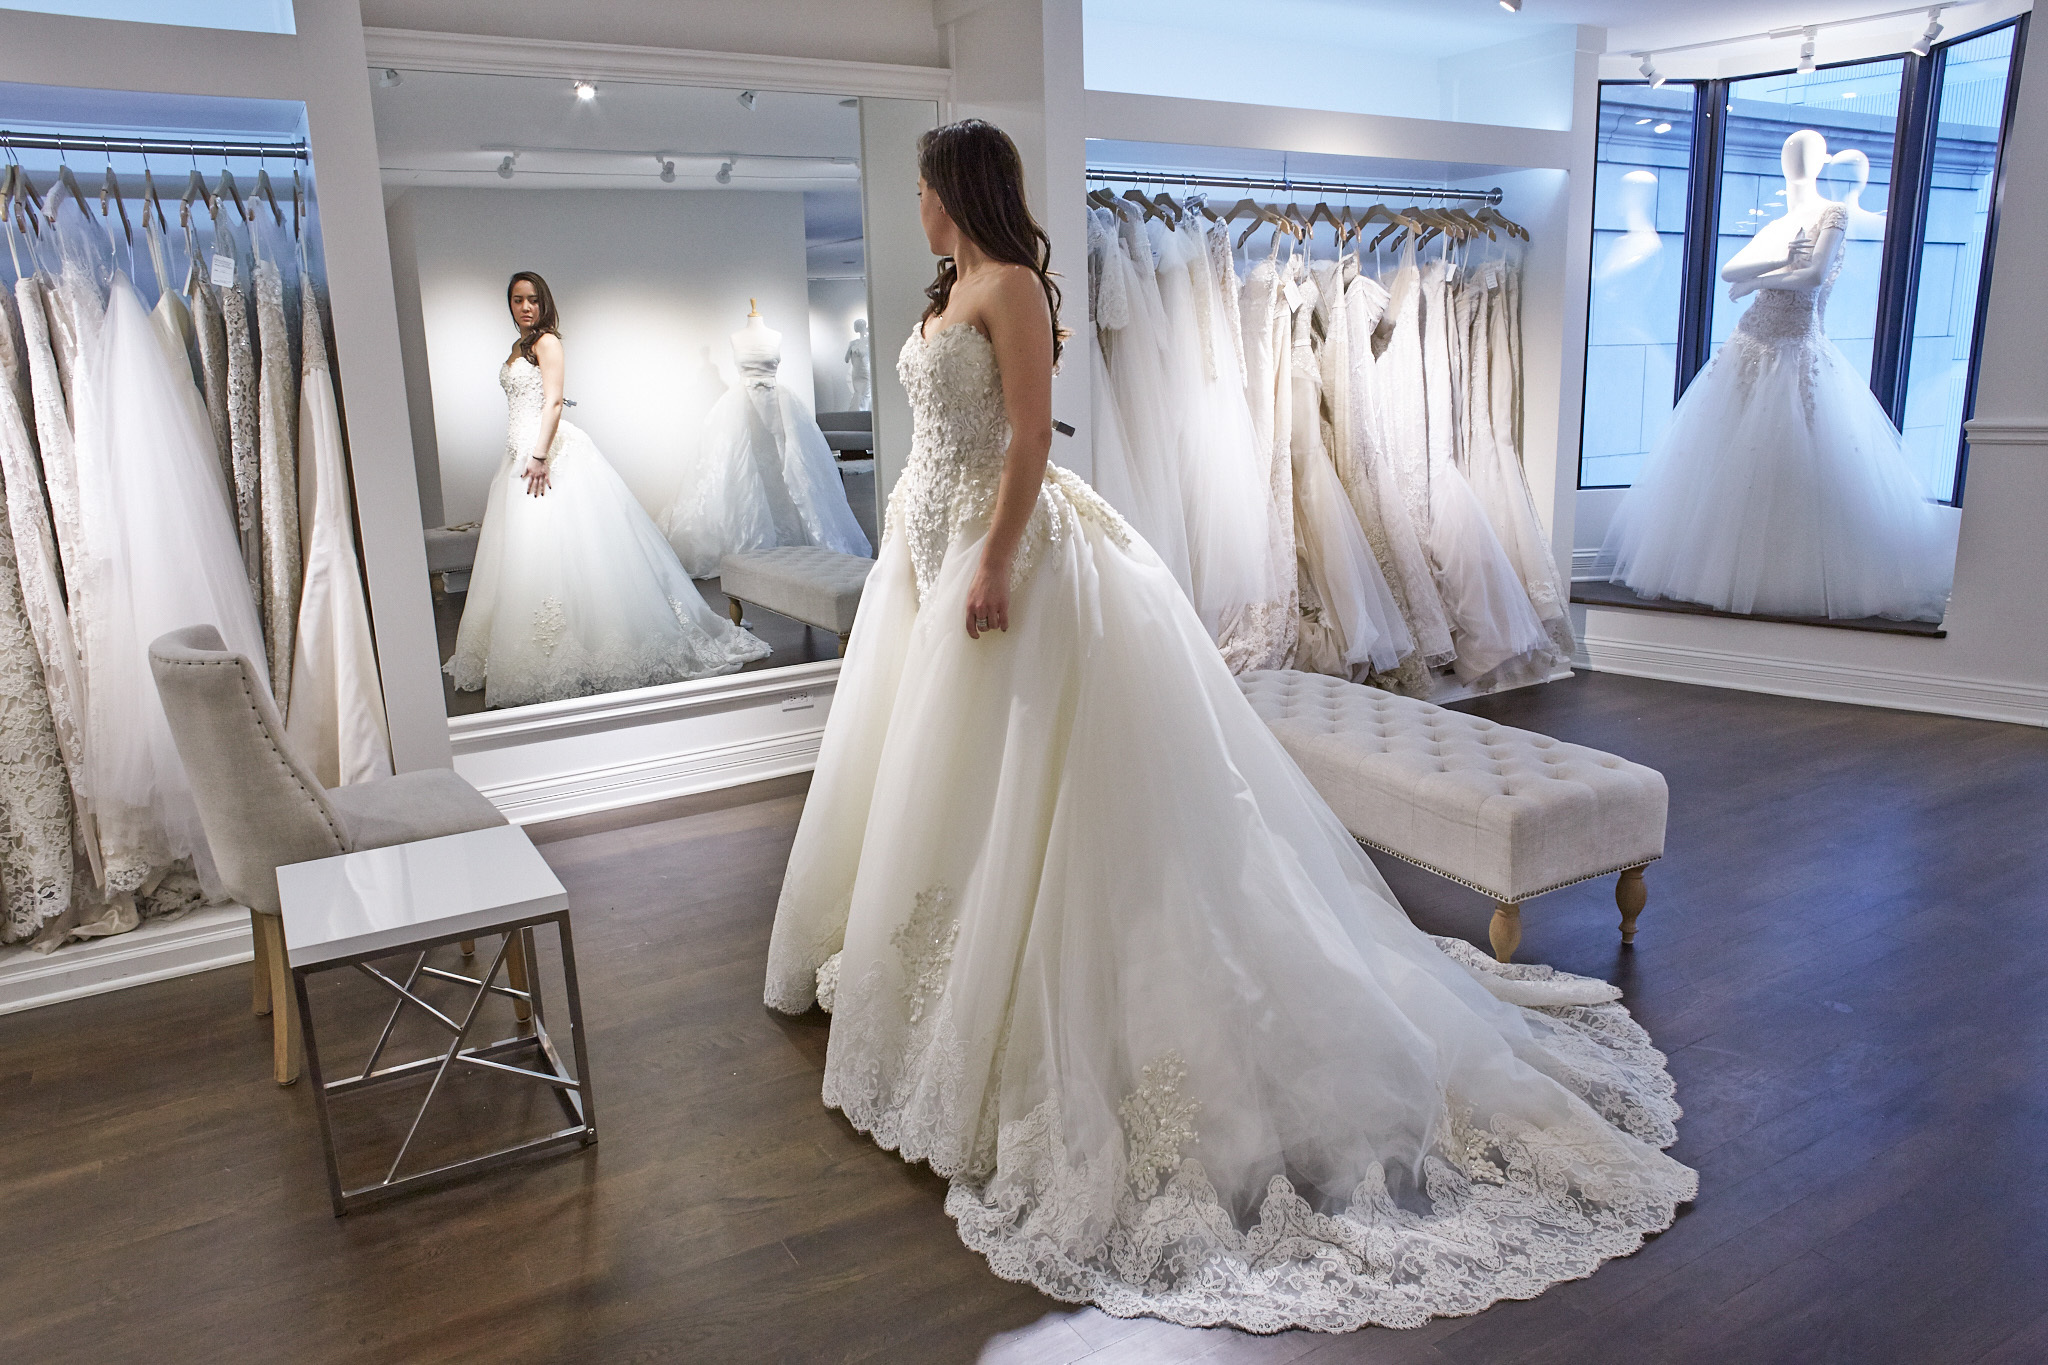 dc0be7d658609 The best bridal shops in Chicago for the perfect wedding dress